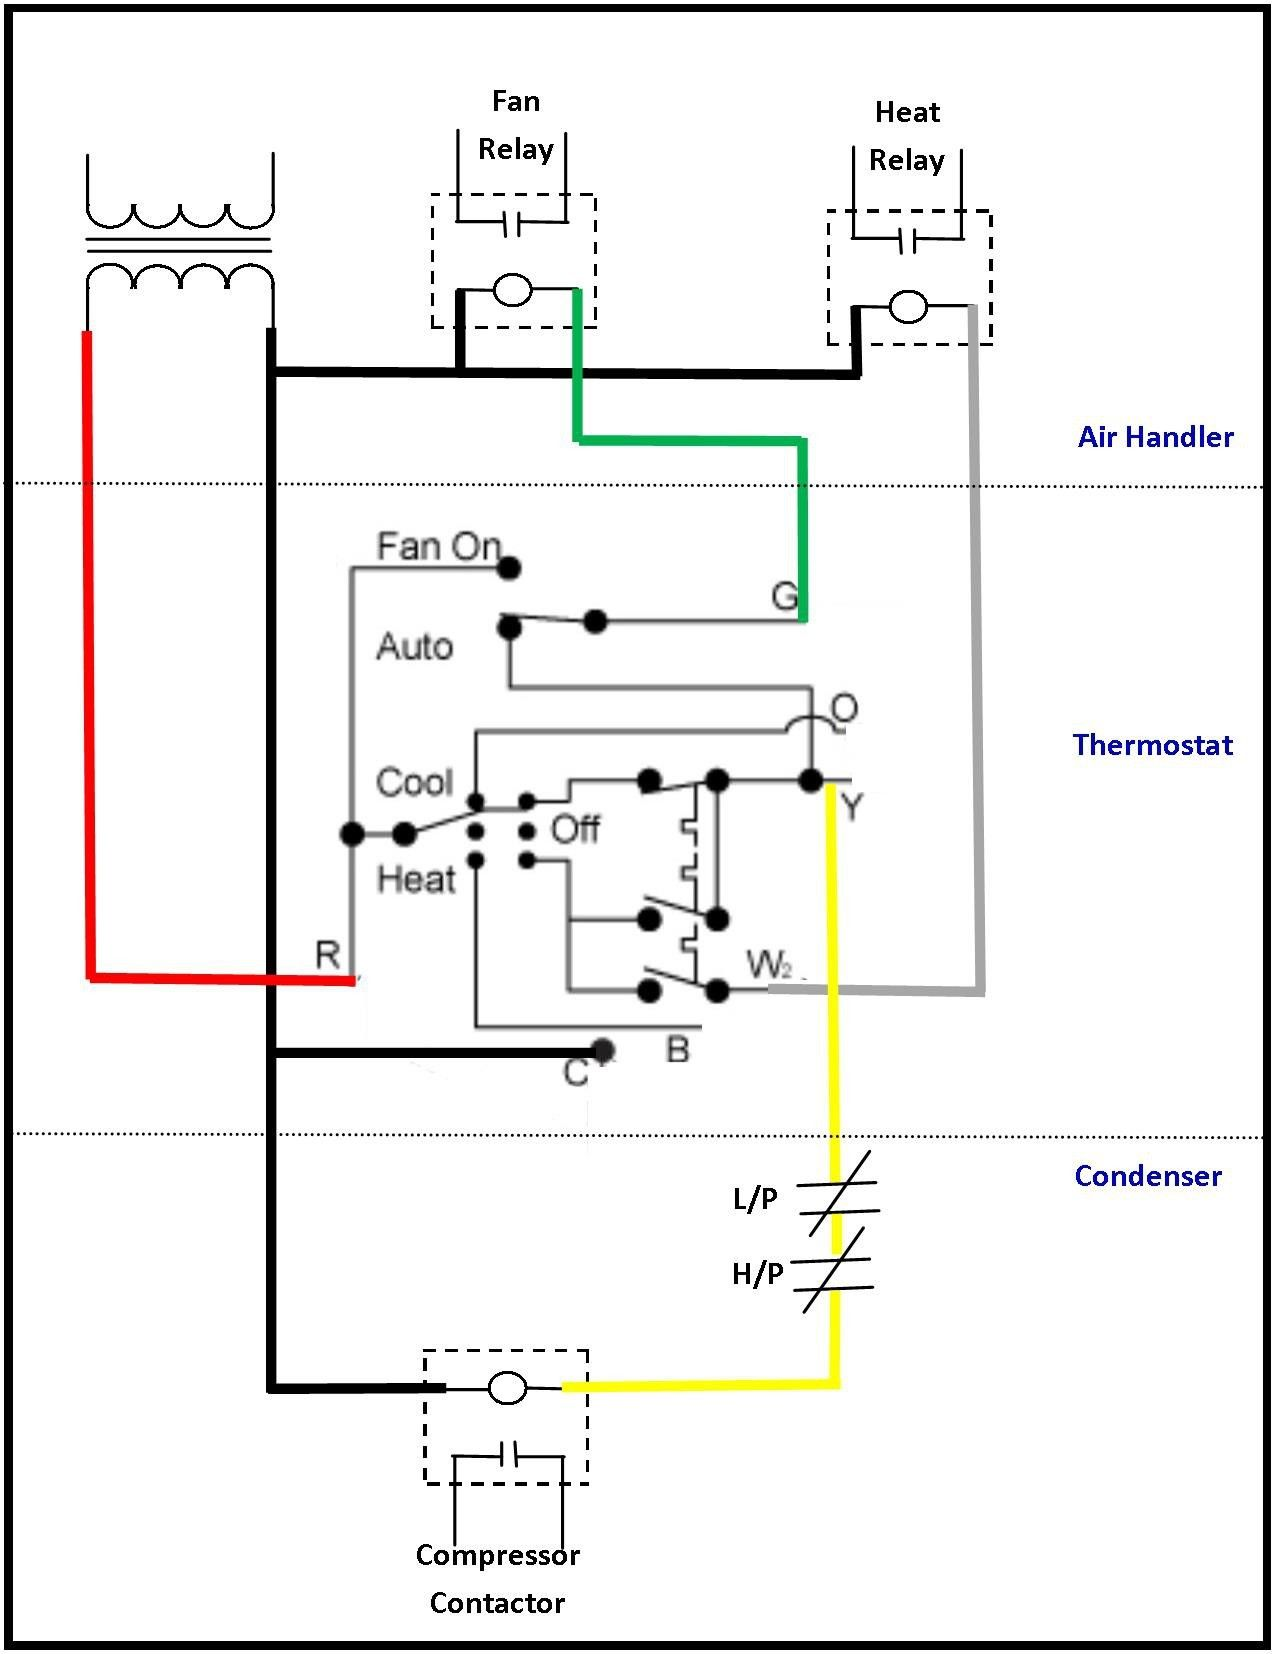 Gas Furnace Schematic - Go Wiring Diagram on old furnace wiring diagram, furnace circuit board wiring diagram, amana furnace exploded view, amana furnace coil, electric furnace wiring diagram, deck wiring diagram, honeywell ignition module wiring diagram, york furnace wiring diagram, lennox control board wiring diagram, goodman heat pump wiring diagram, amana ptac wiring-diagram, defrost board wiring diagram, amana furnace dimensions, janitrol furnace wiring diagram, american standard furnace wiring diagram, propane furnace wiring diagram, white rodgers furnace control board wiring diagram, tappan furnace wiring diagram, honeywell boiler control wiring diagram, amana heat pump parts breakdown,